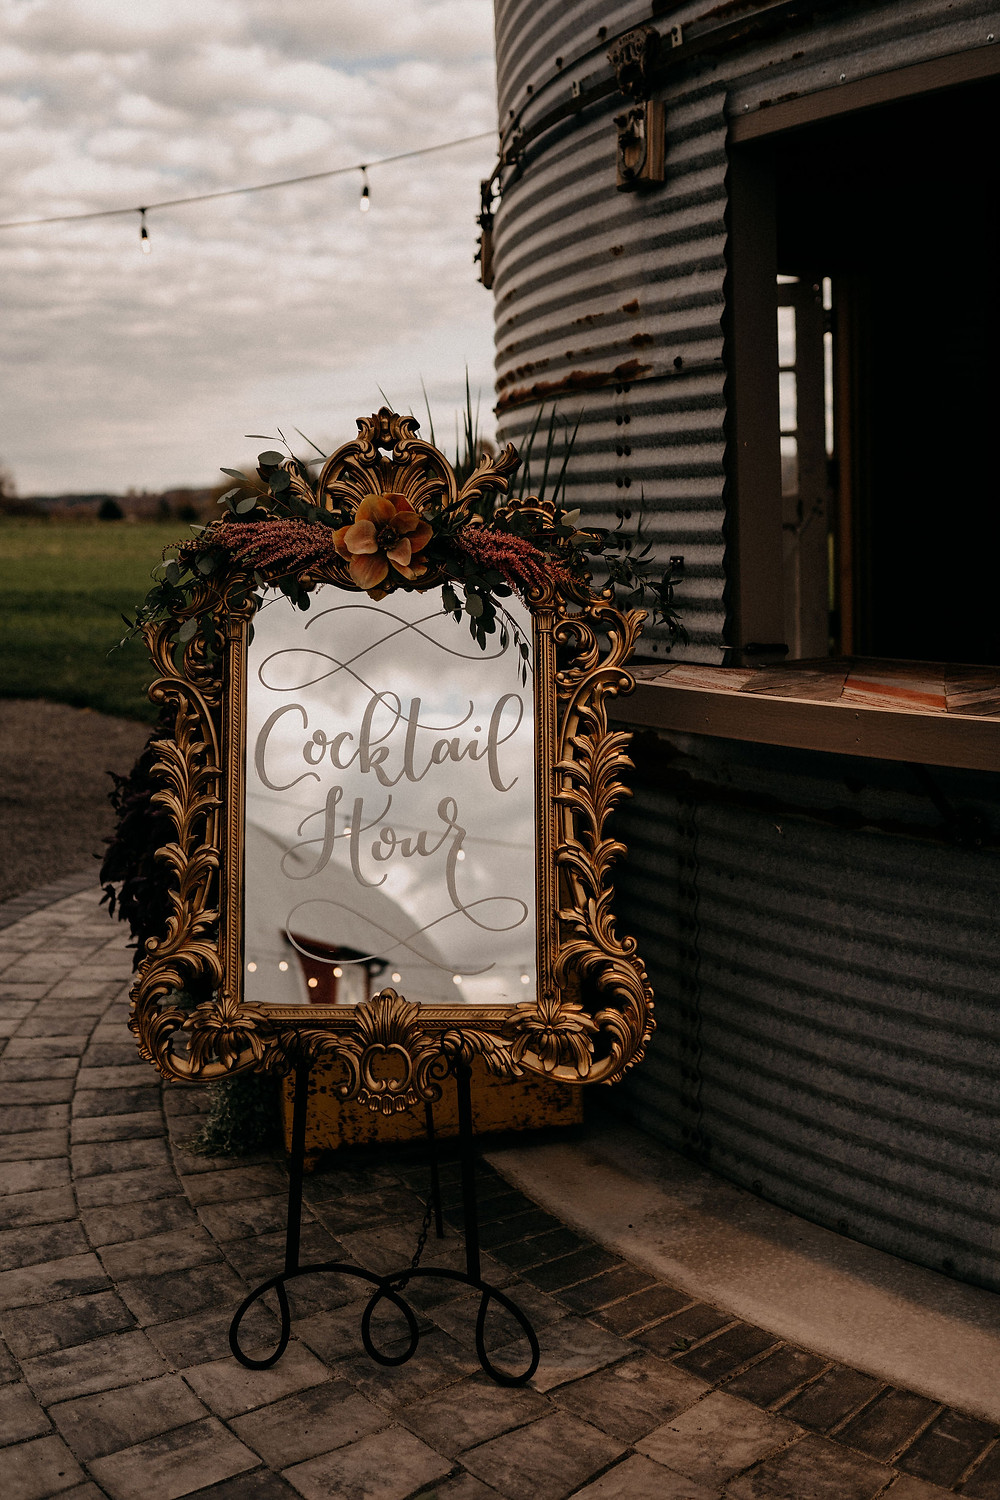 Wedding Cocktail Hour Sign: Warm & Rustic Styled Shoot at Hayloft in the Arch captured by Tracy Jade Photography featured on Pretty Little Vintage Co.